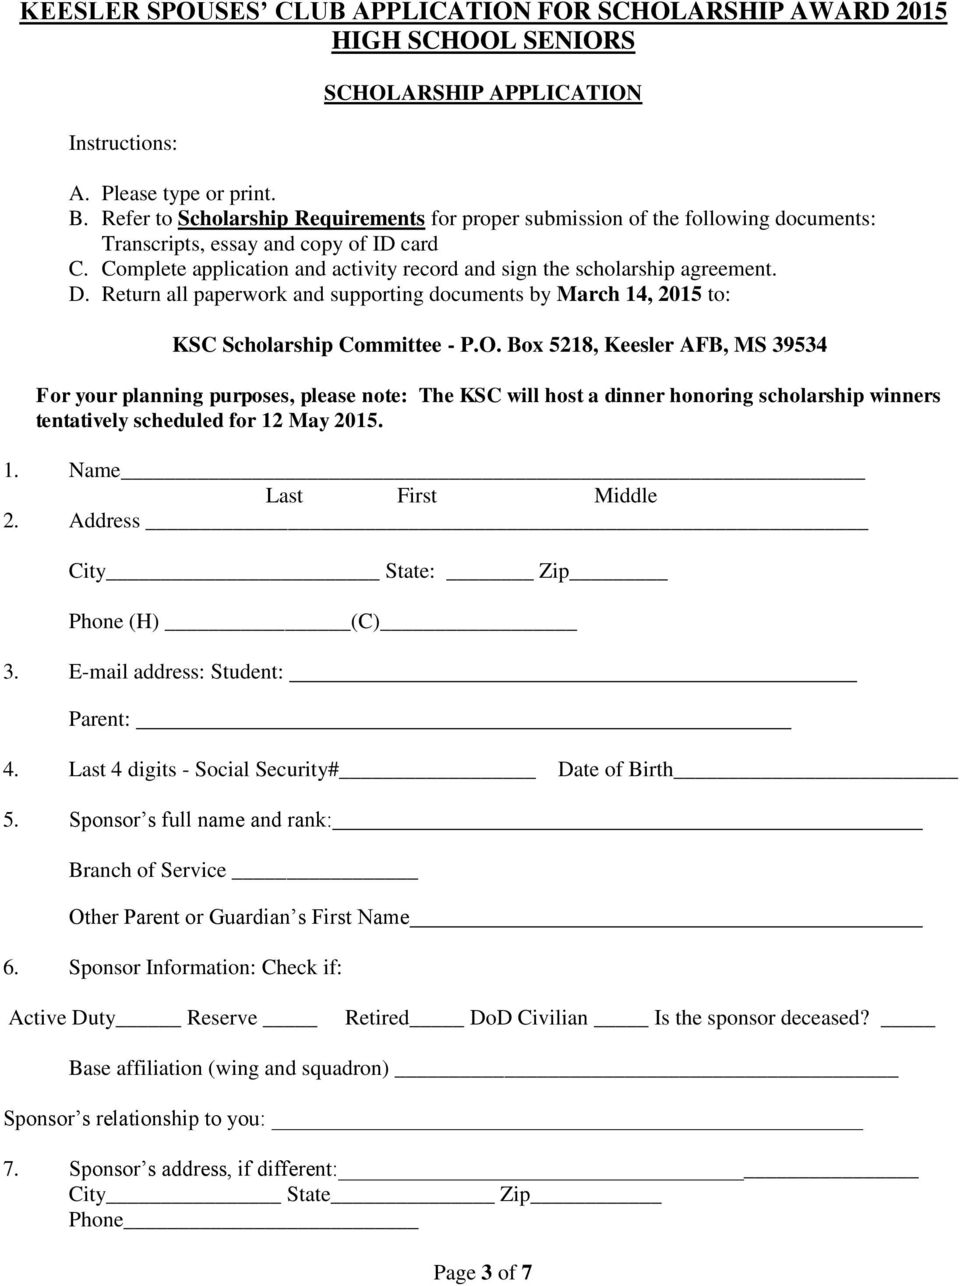 Box 5218, Keesler AFB, MS 39534 For your planning purposes, please note: The KSC will host a dinner honoring scholarship winners tentatively scheduled for 12 May 2015. 1. Name Last First Middle 2.